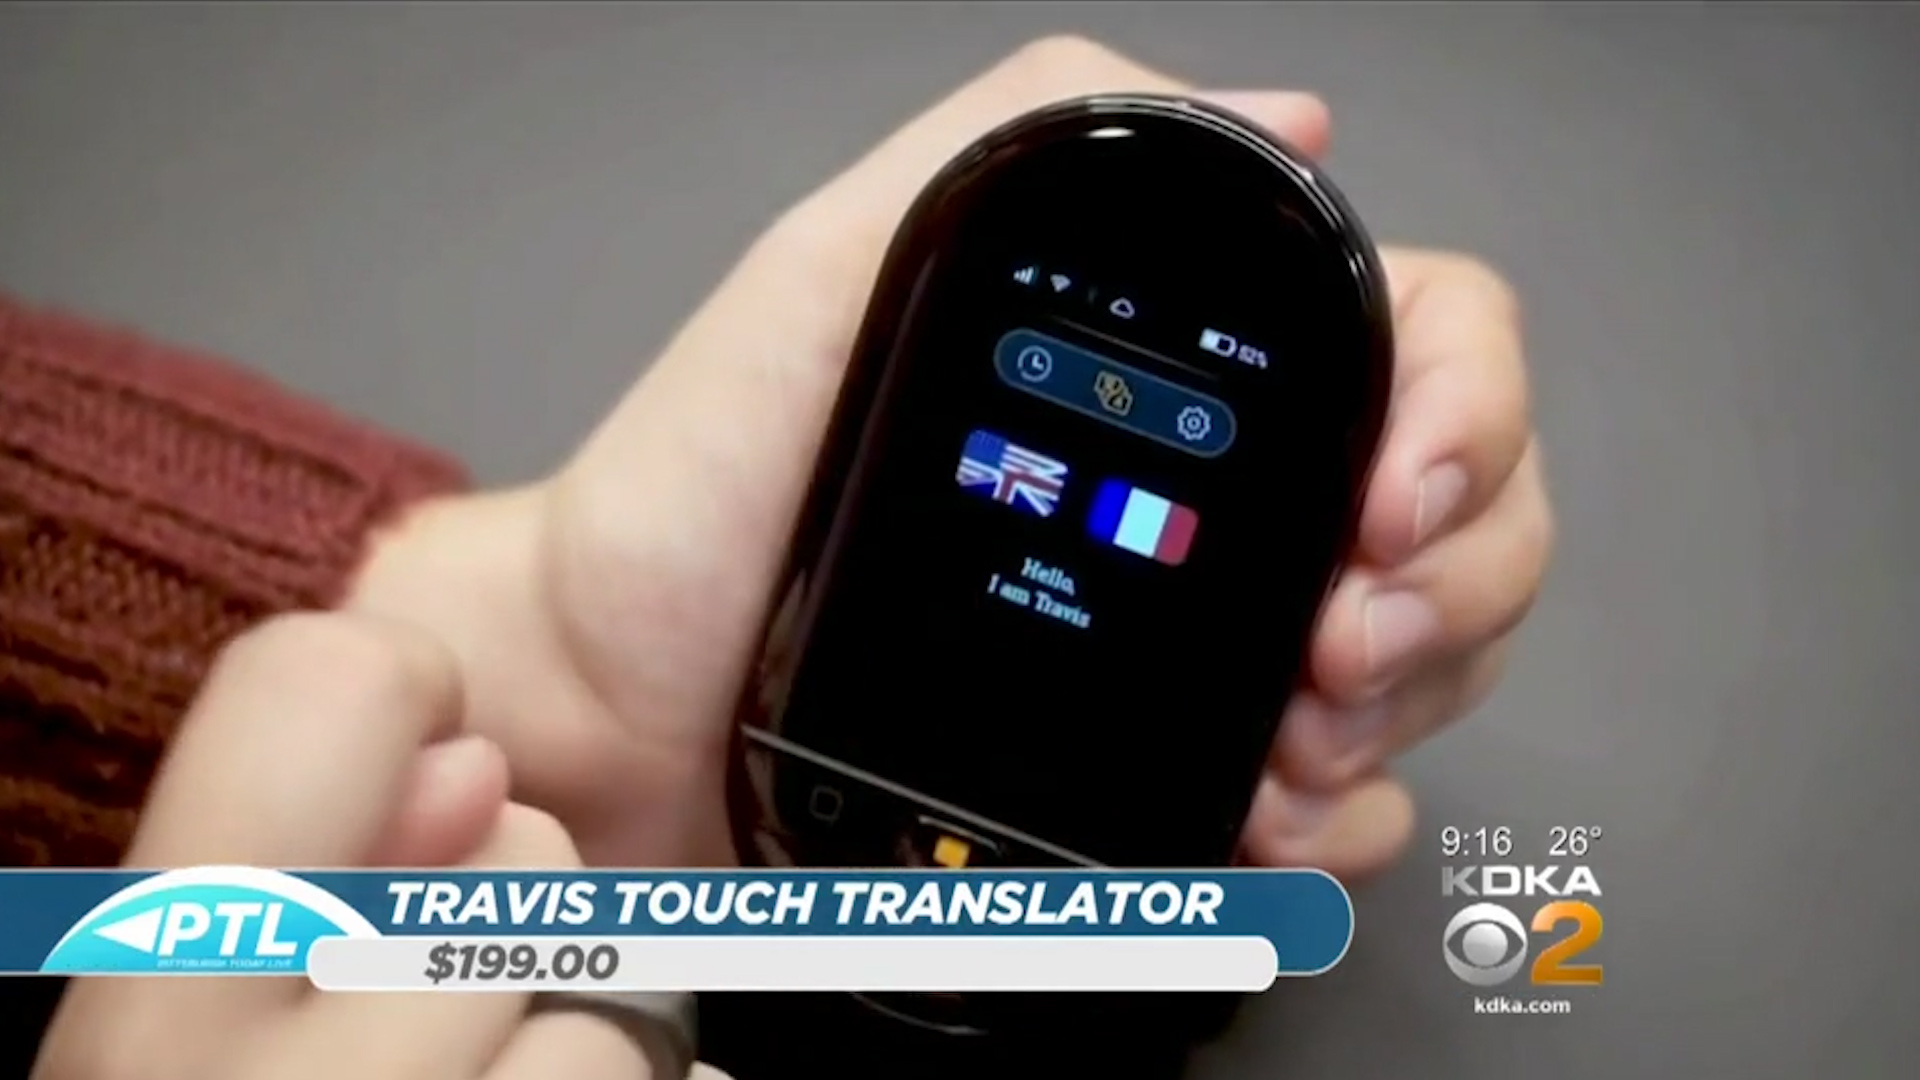 TRAVIS TOUCH TRANSLATOR - $199.00Shop Now